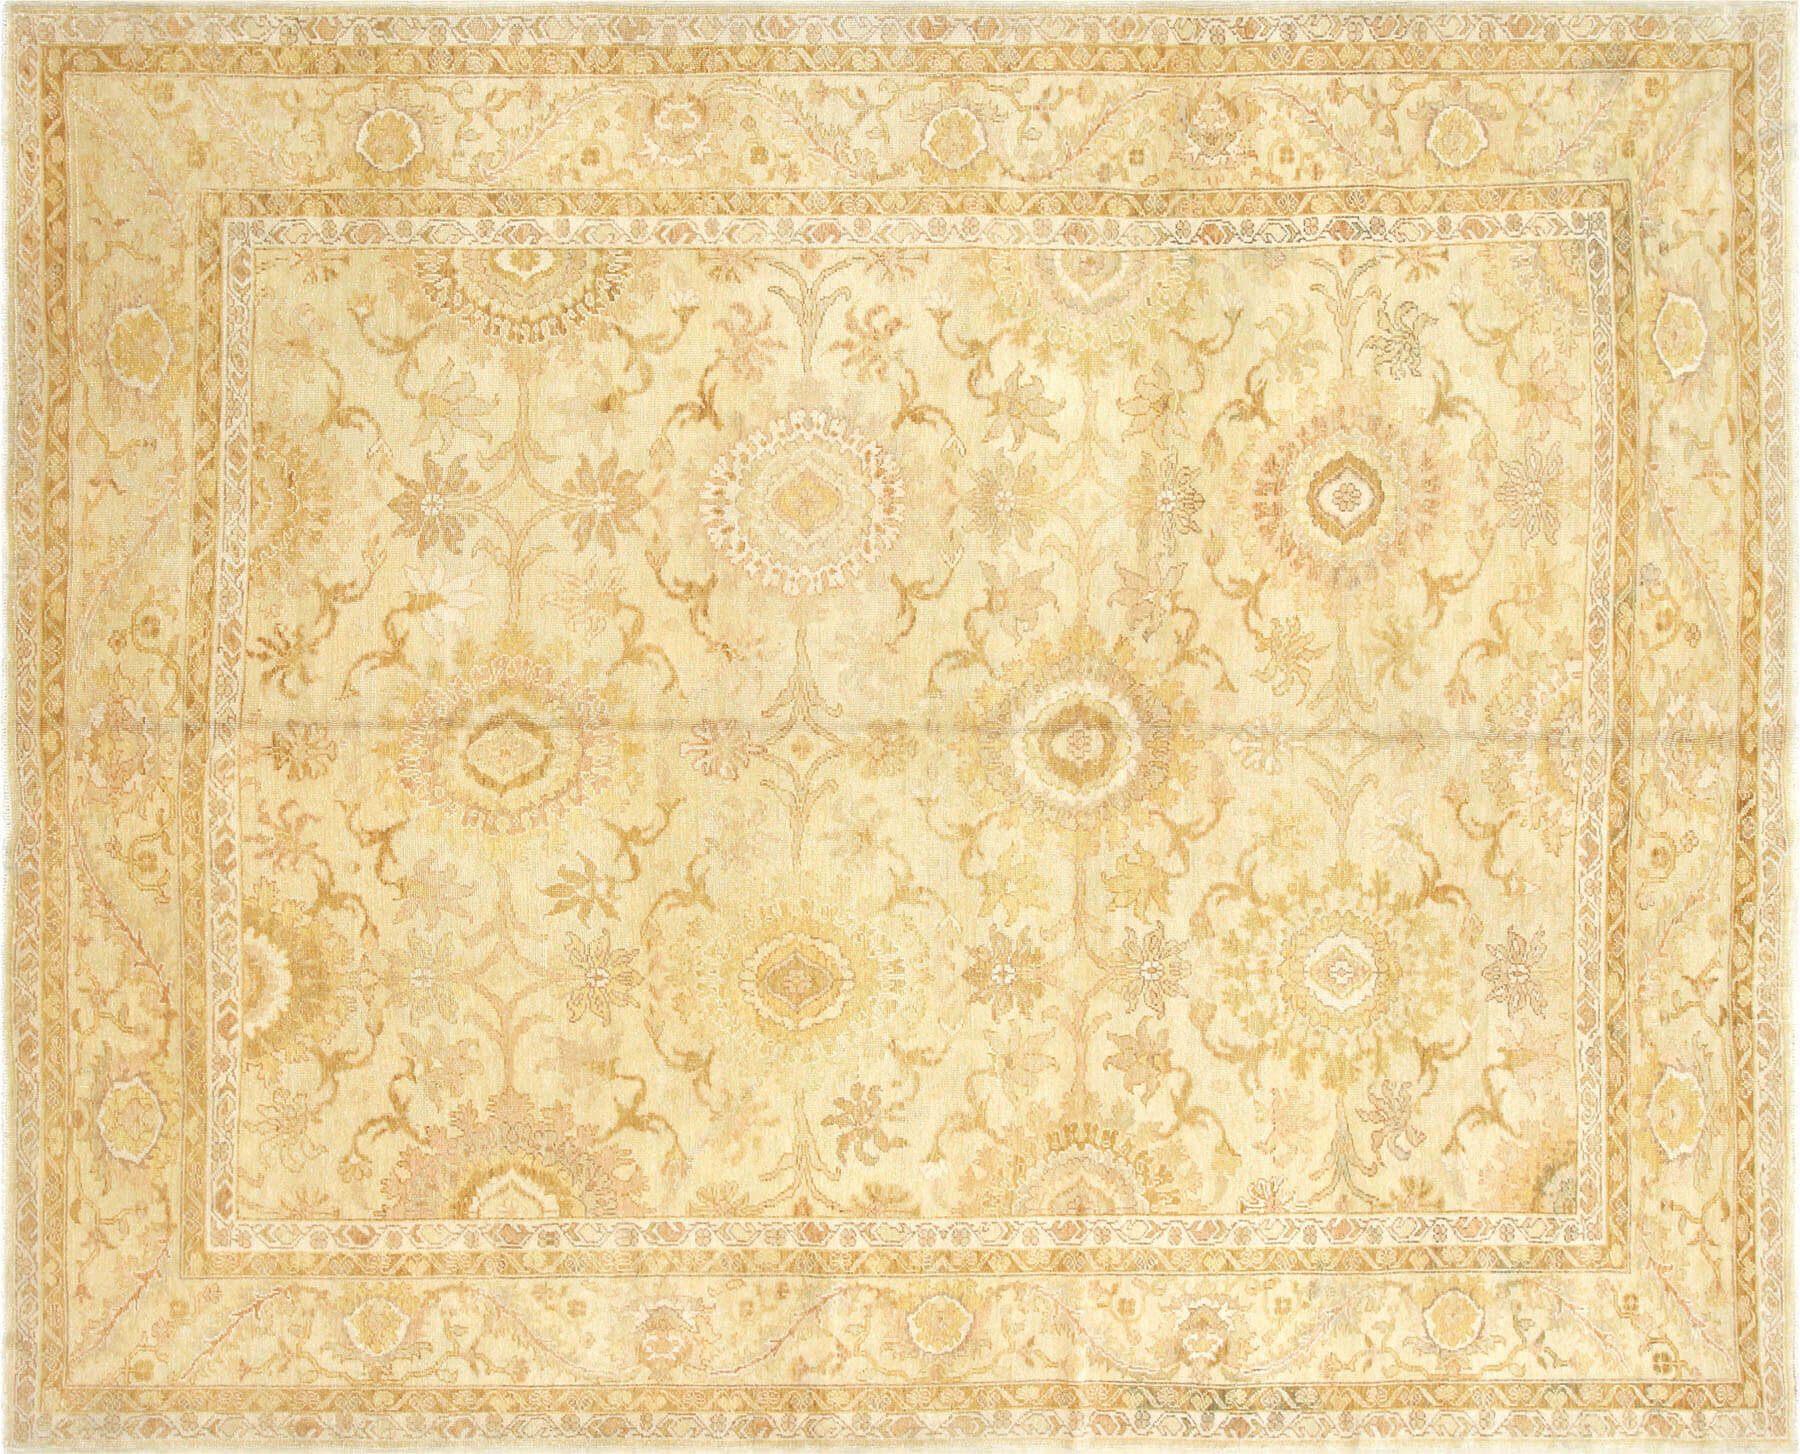 "Recently Woven Turkish Oushak Carpet - 8'4"" x 10'4"""